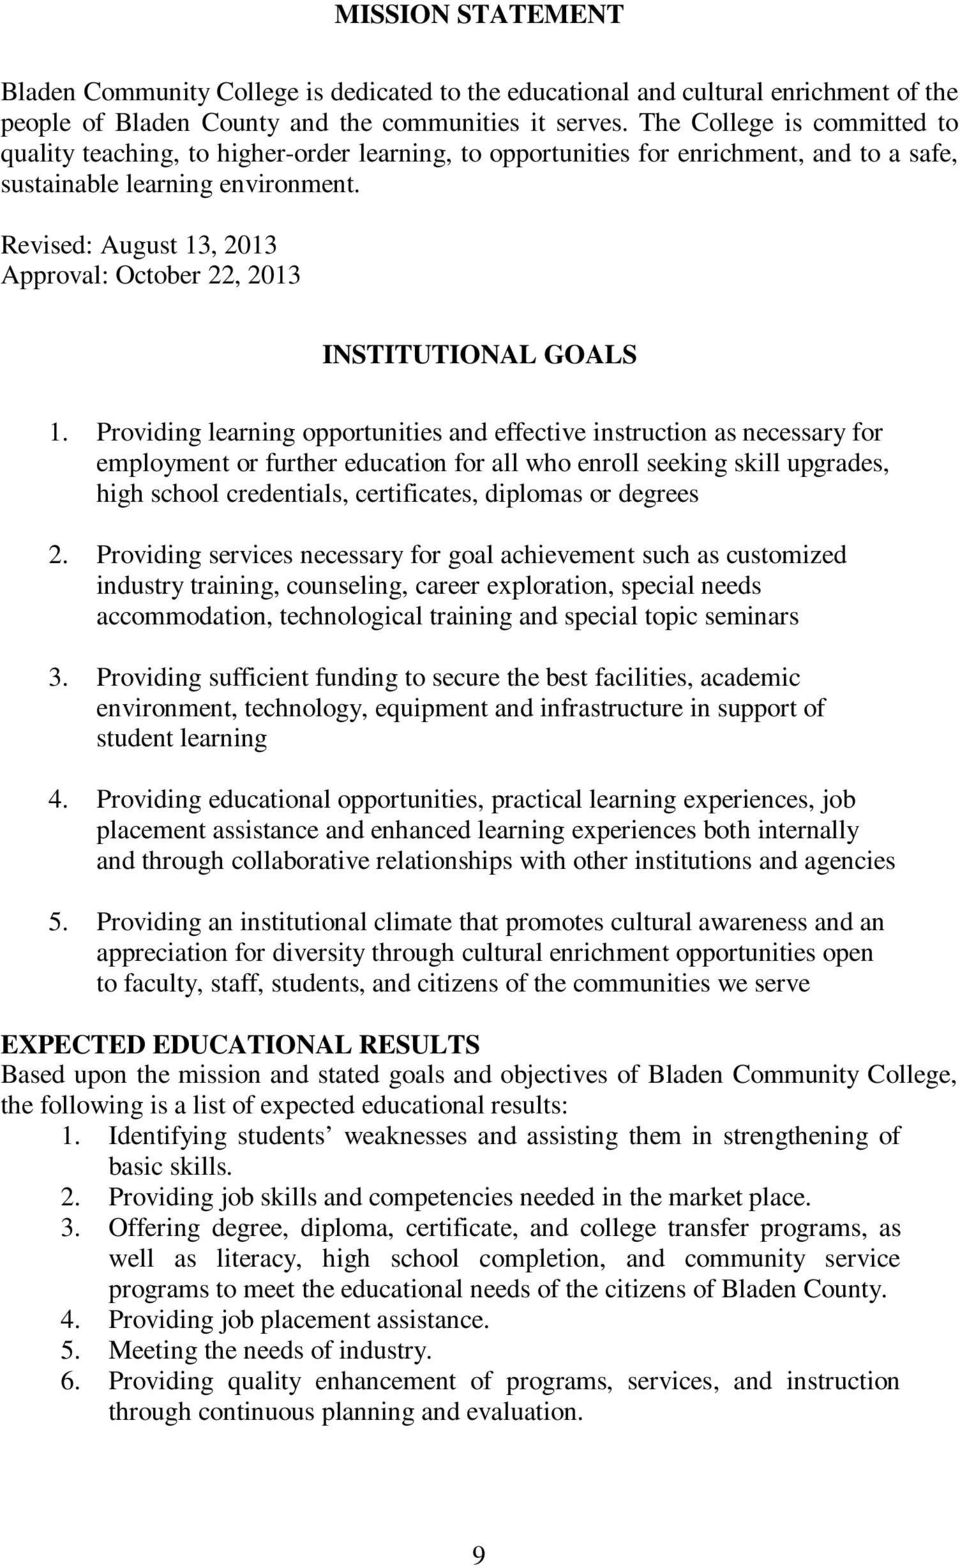 Revised: August 13, 2013 Approval: October 22, 2013 INSTITUTIONAL GOALS 1.